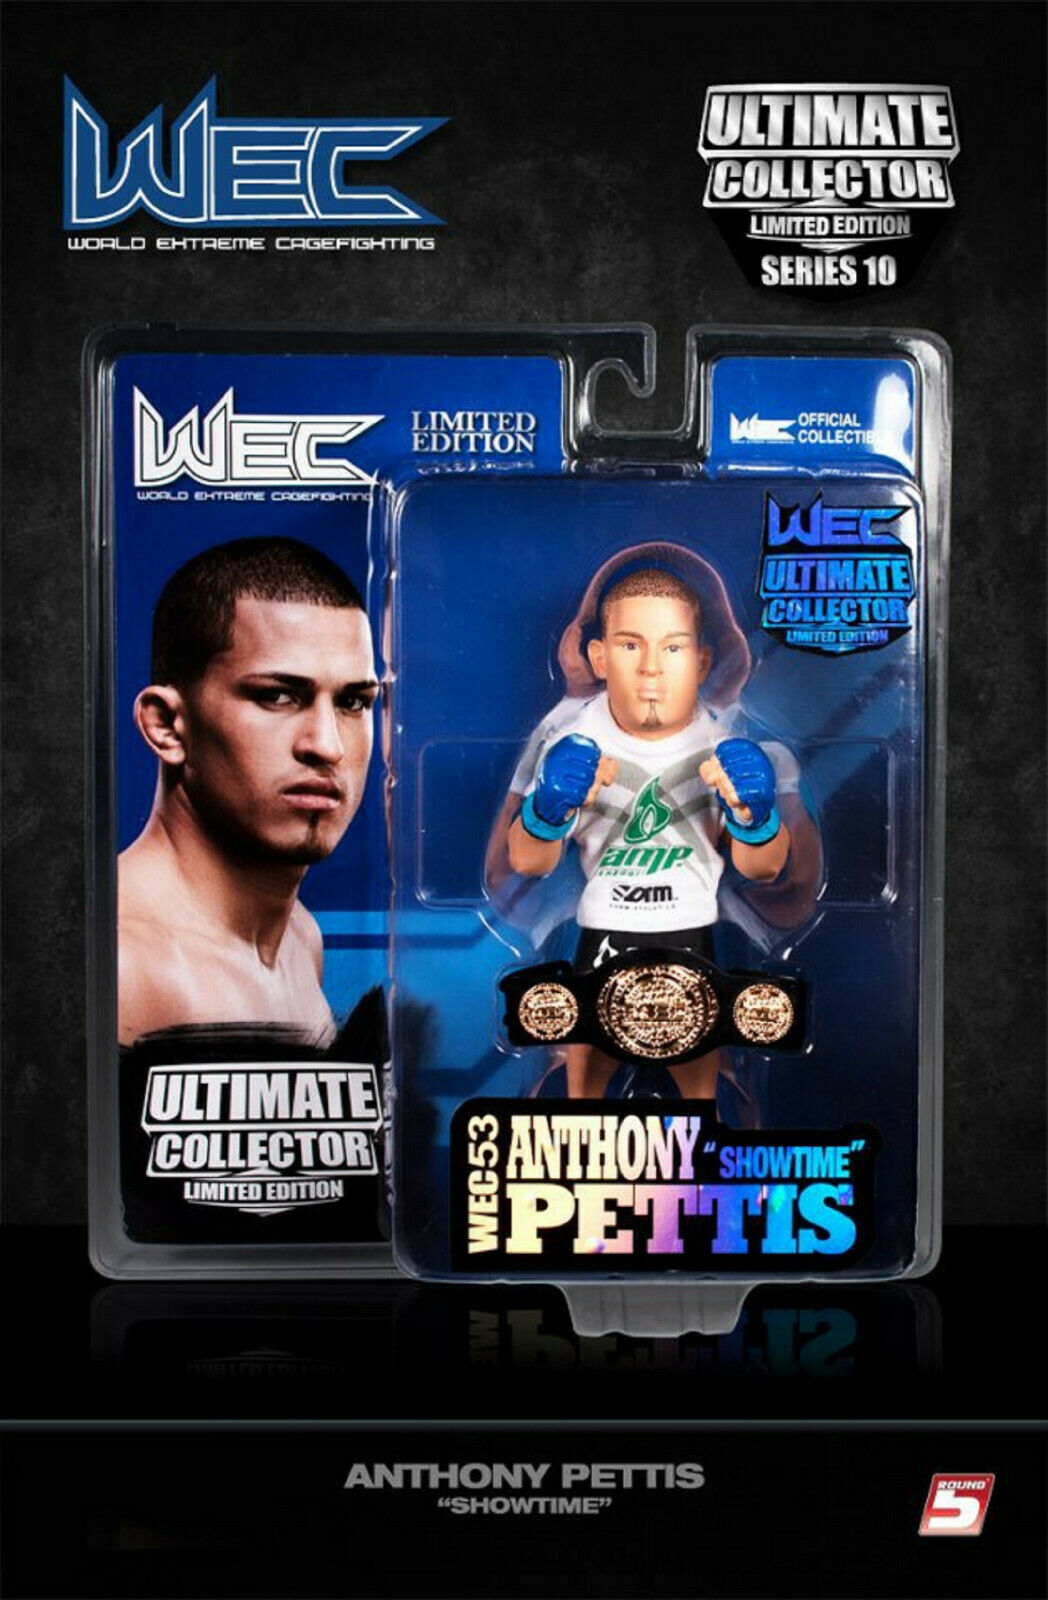 UFC ROUND 5 ANTHONY PETTIS LIMITED EDITION FIGURE WEC  BNIB